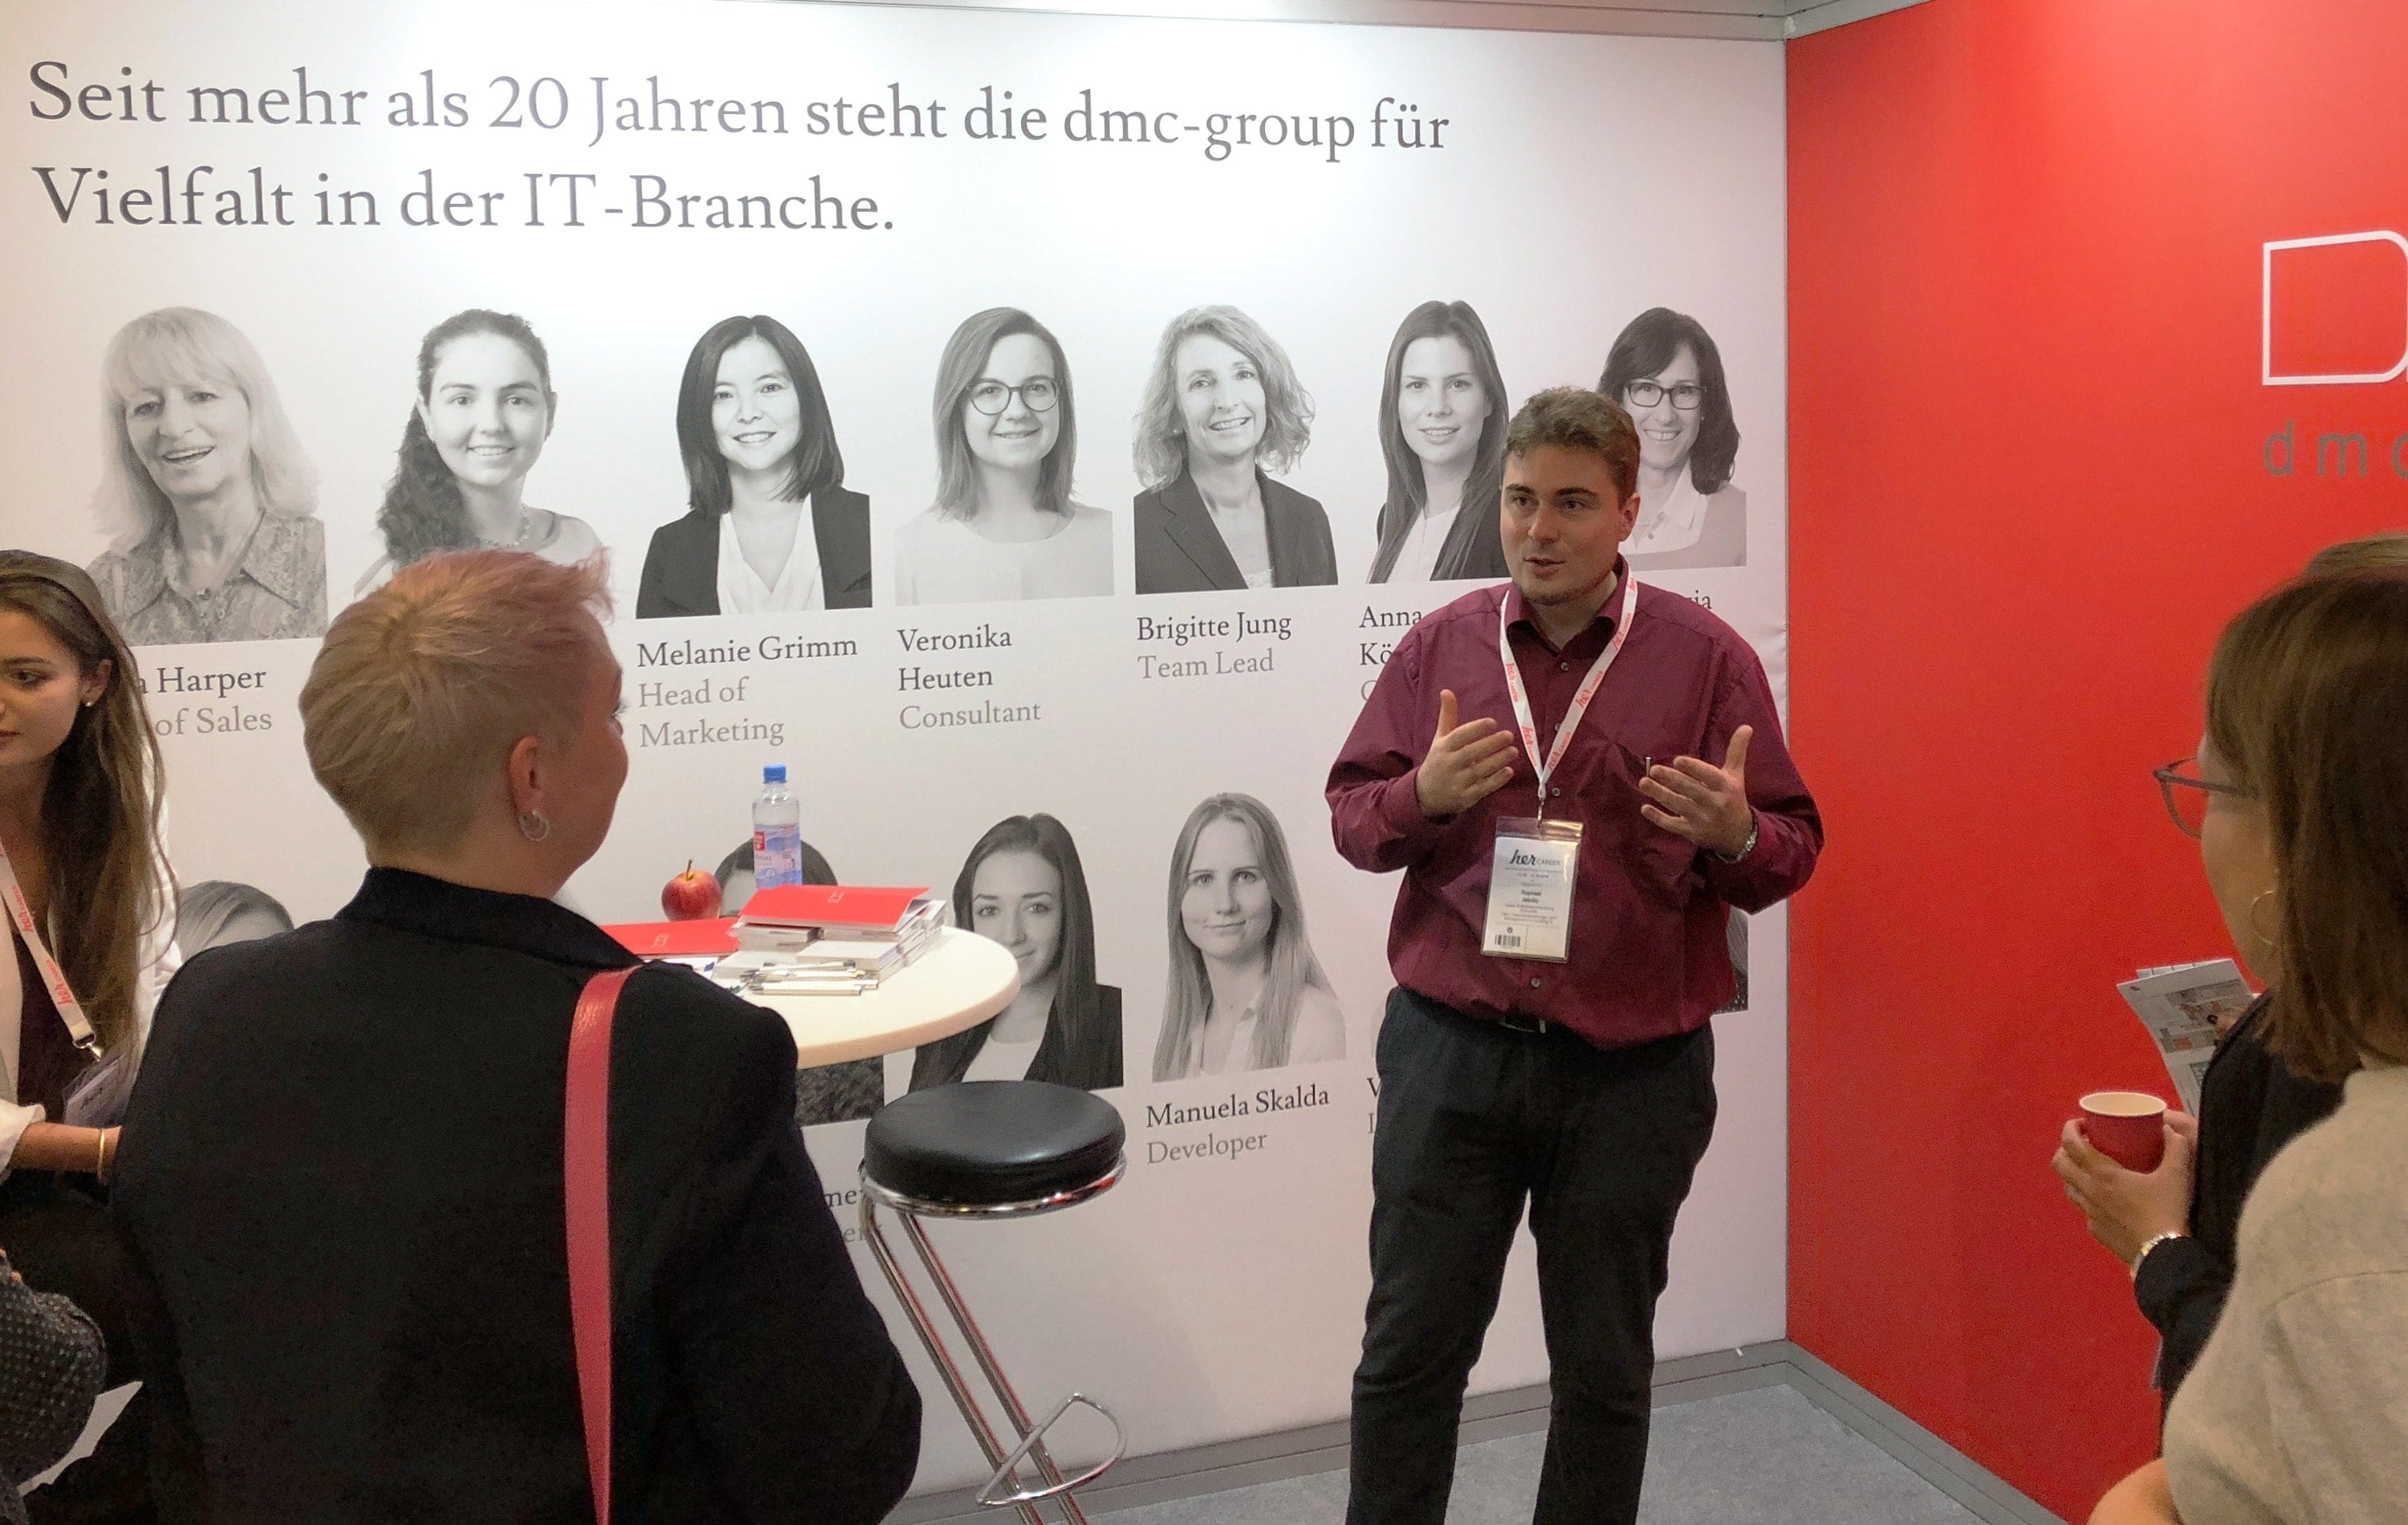 maxfath-dmc-group-muenchen-redesign-branding-messestand-hercareer-vortrag